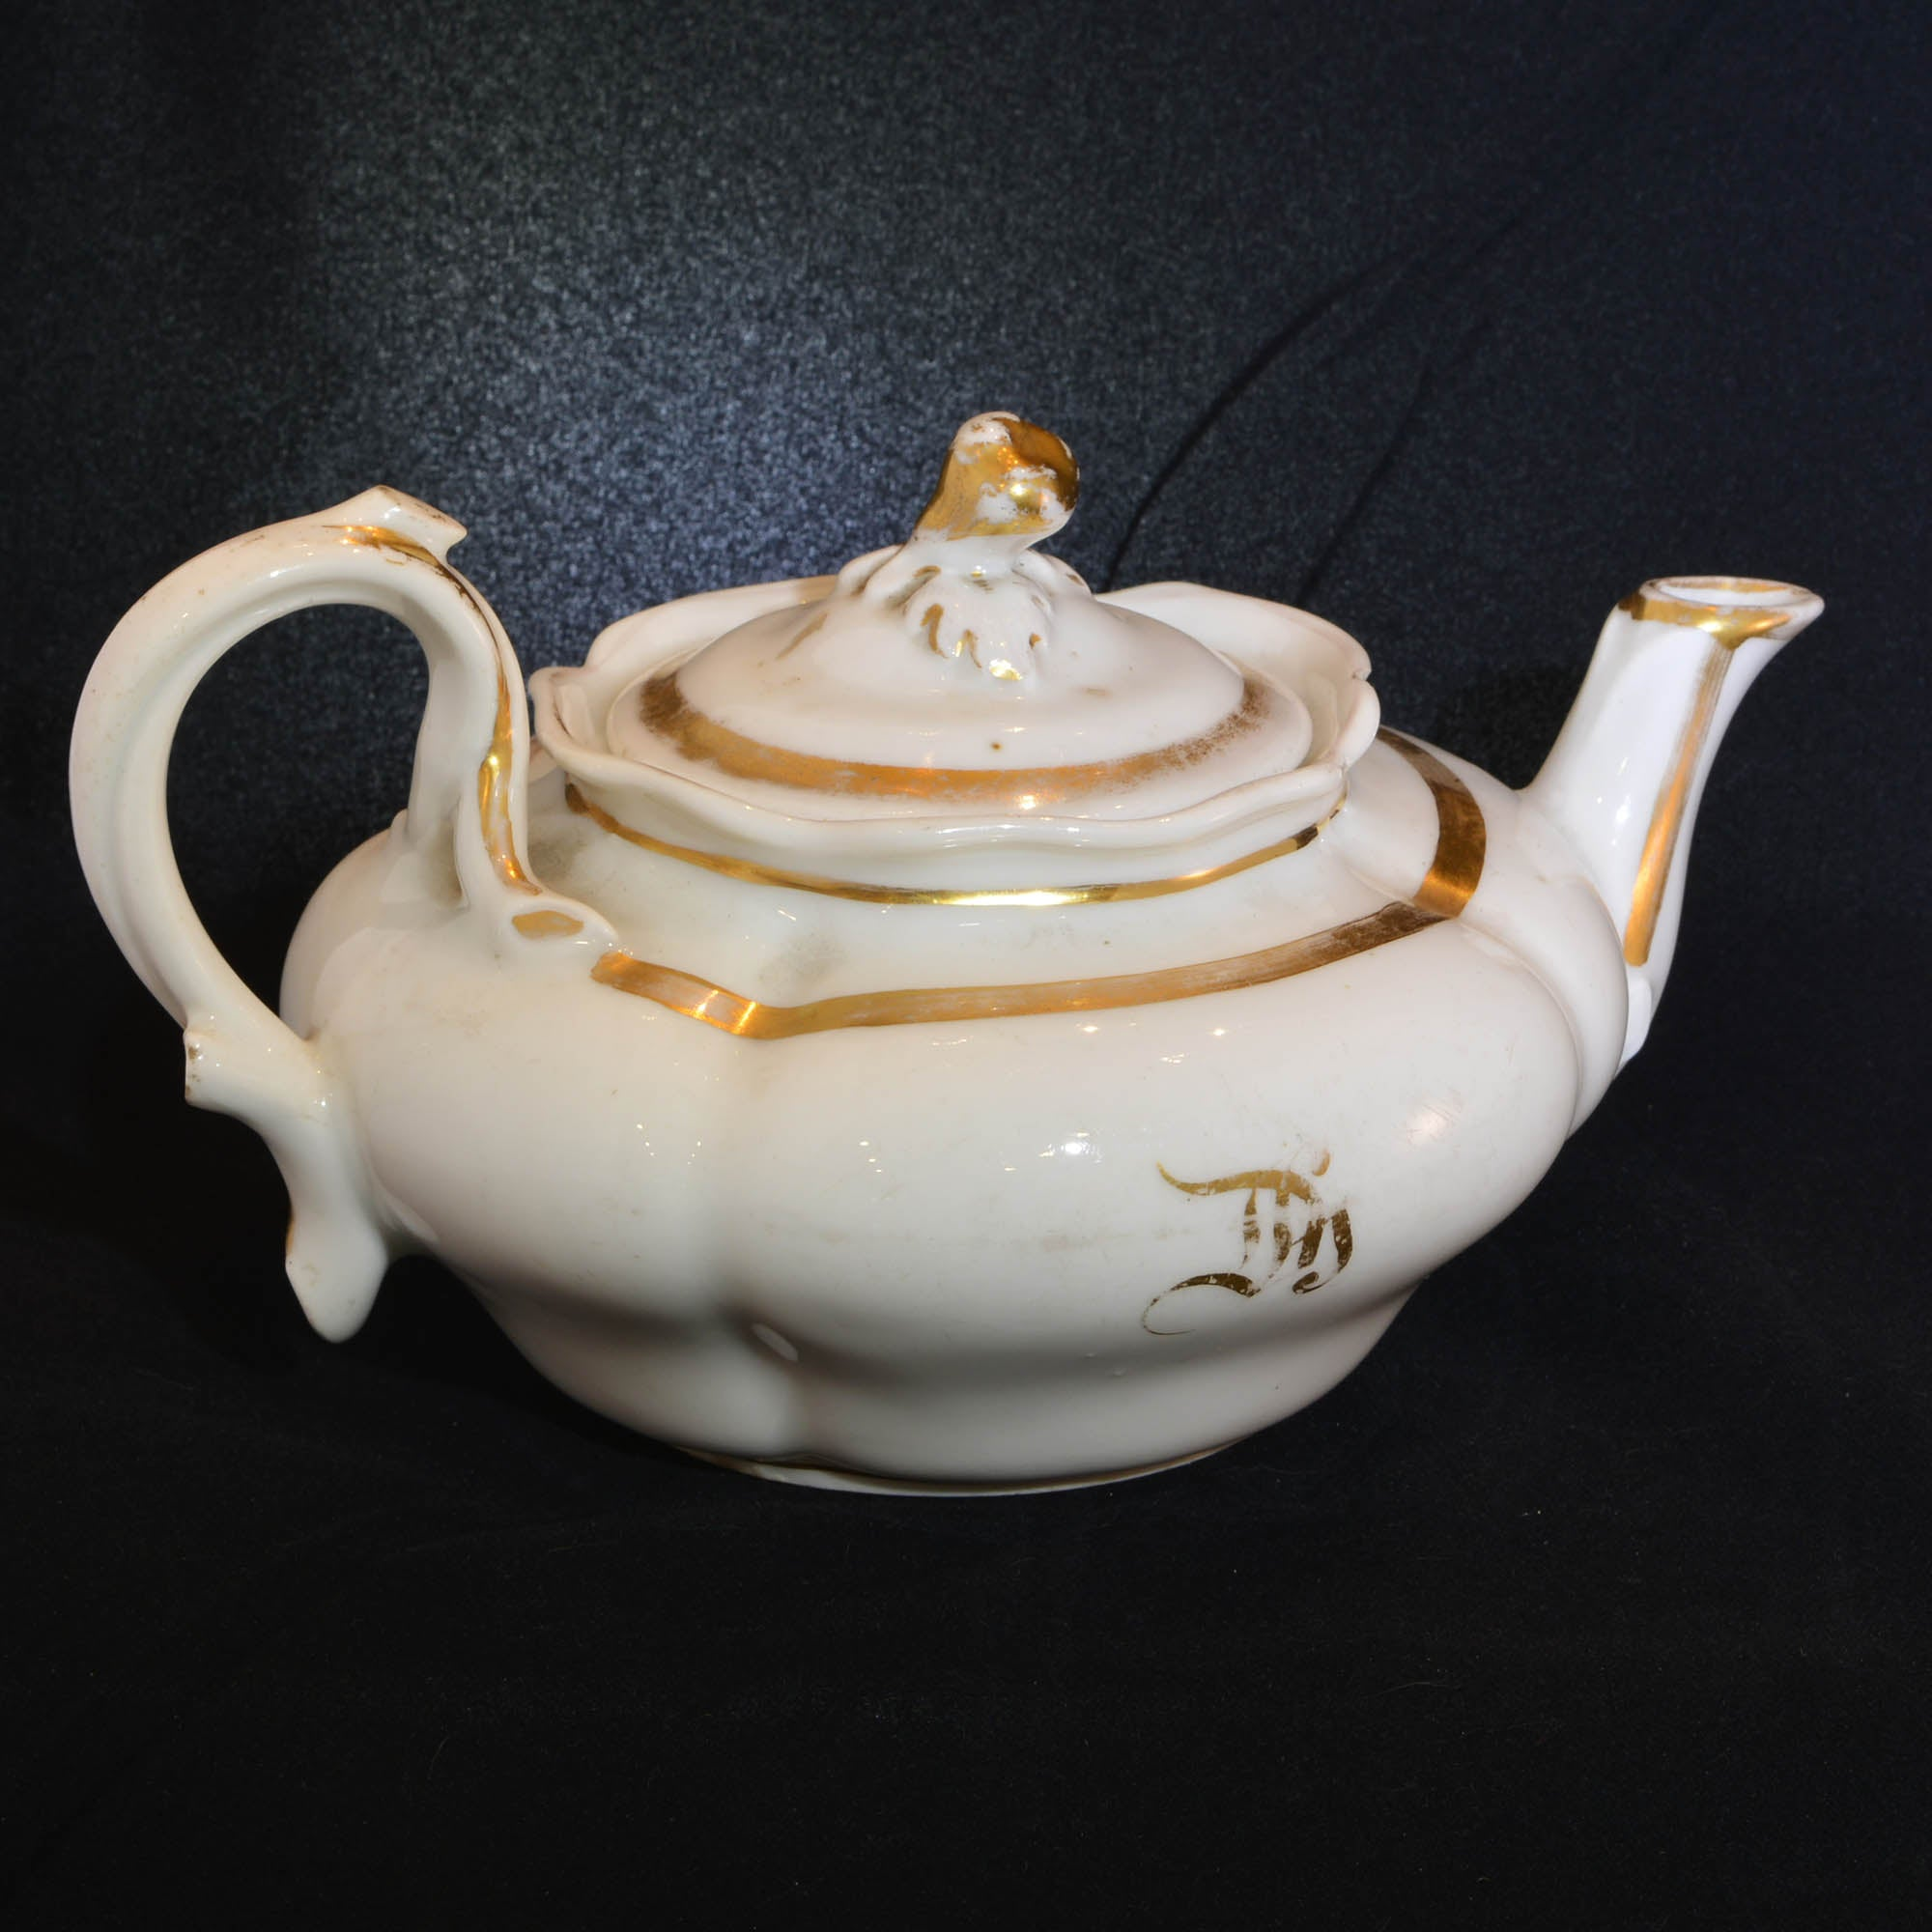 Antique French White Porcelain Teapot with Gold Accent